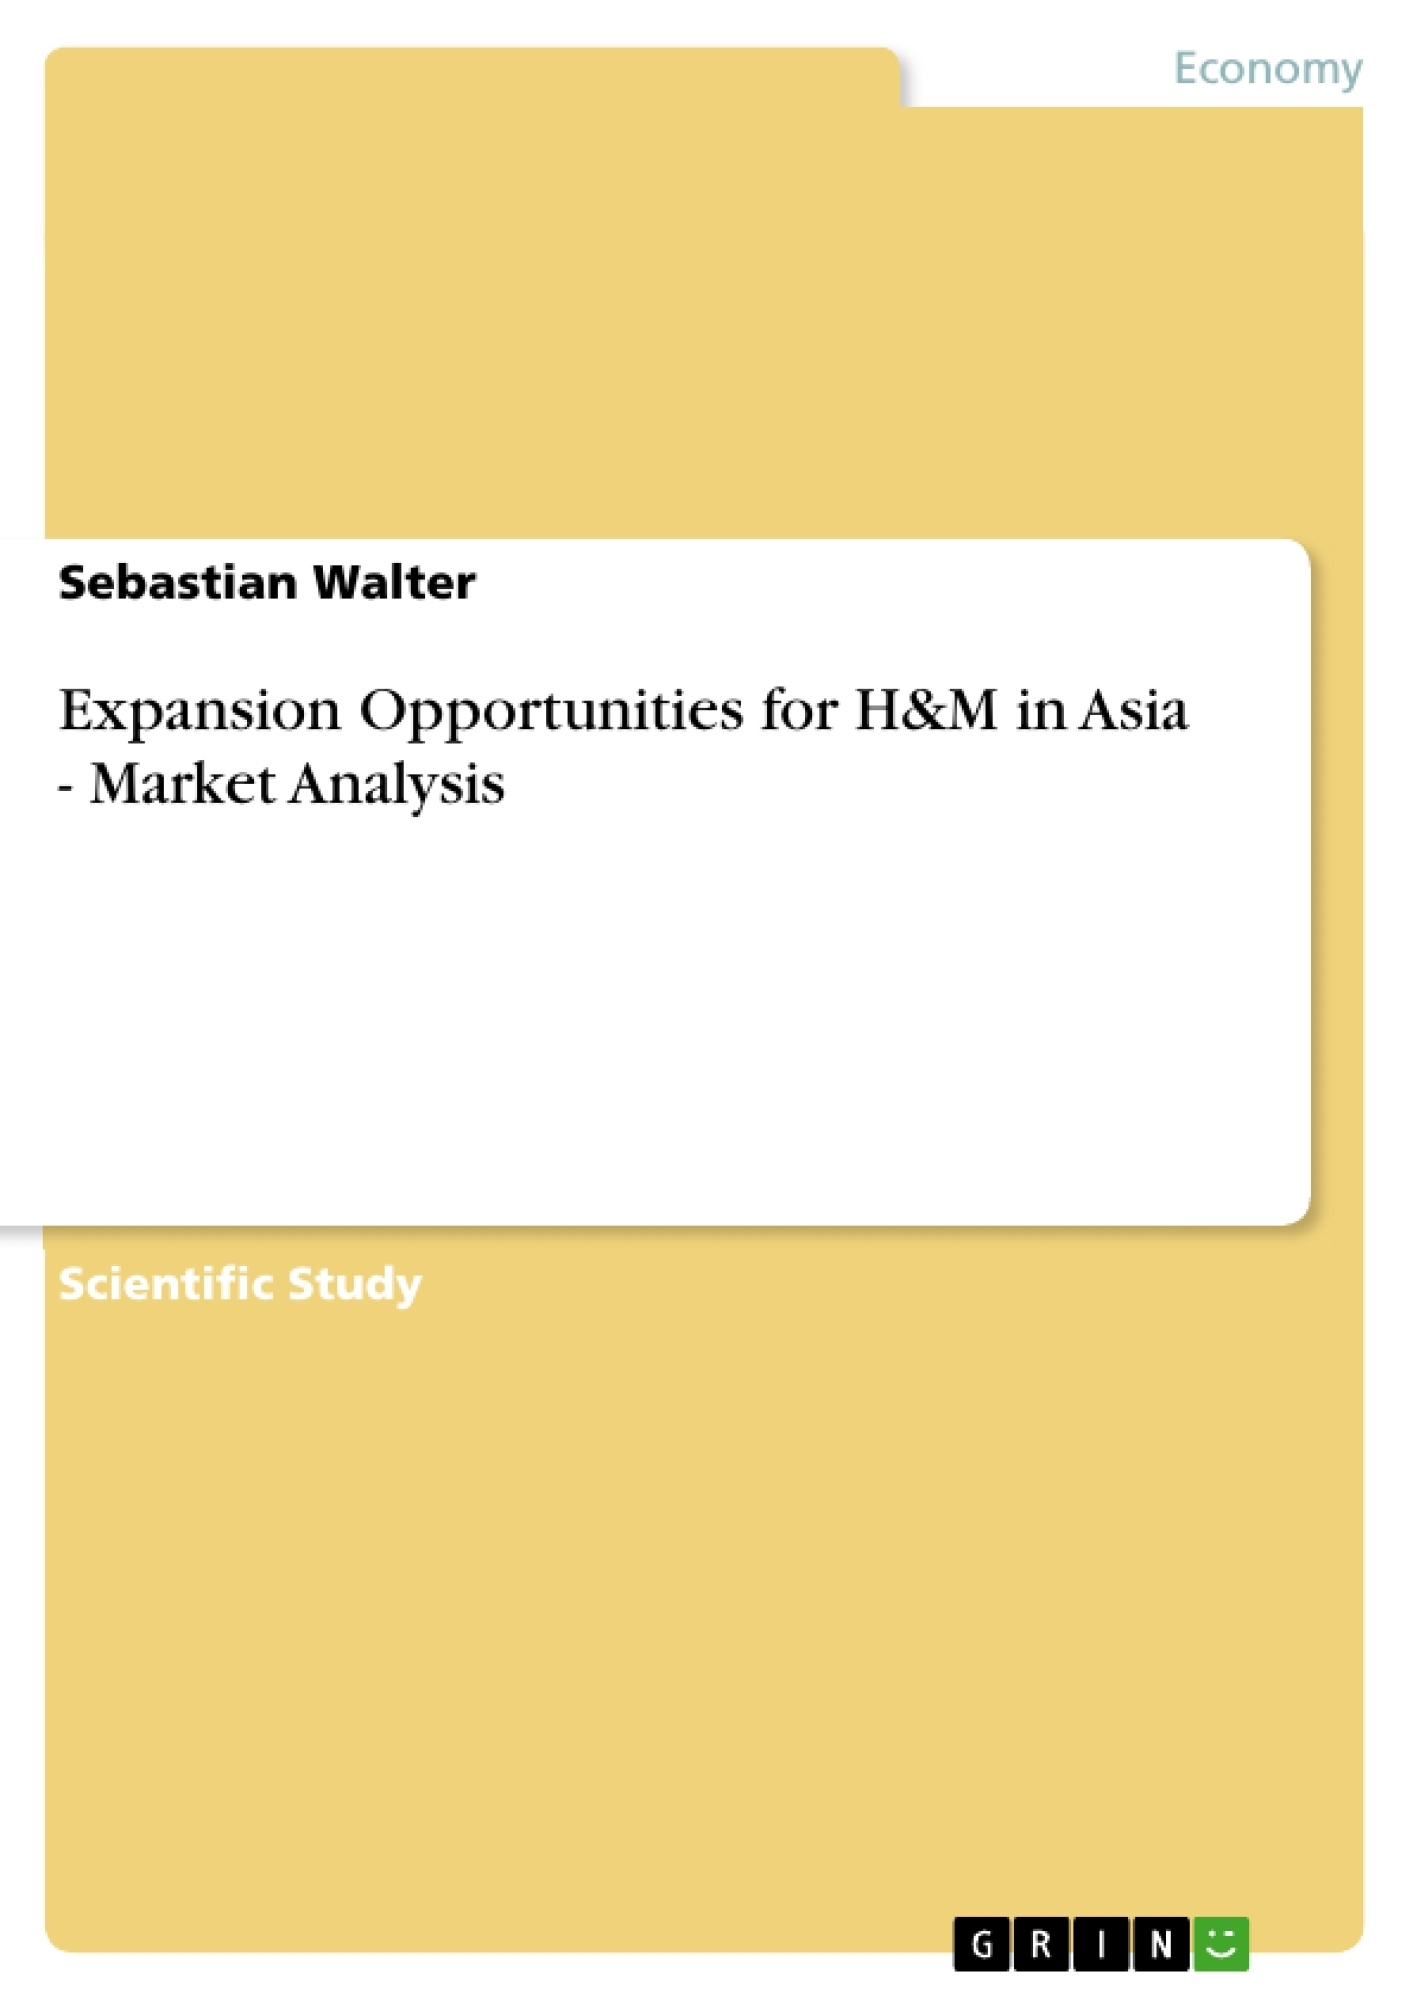 Title: Expansion Opportunities for H&M in Asia - Market Analysis